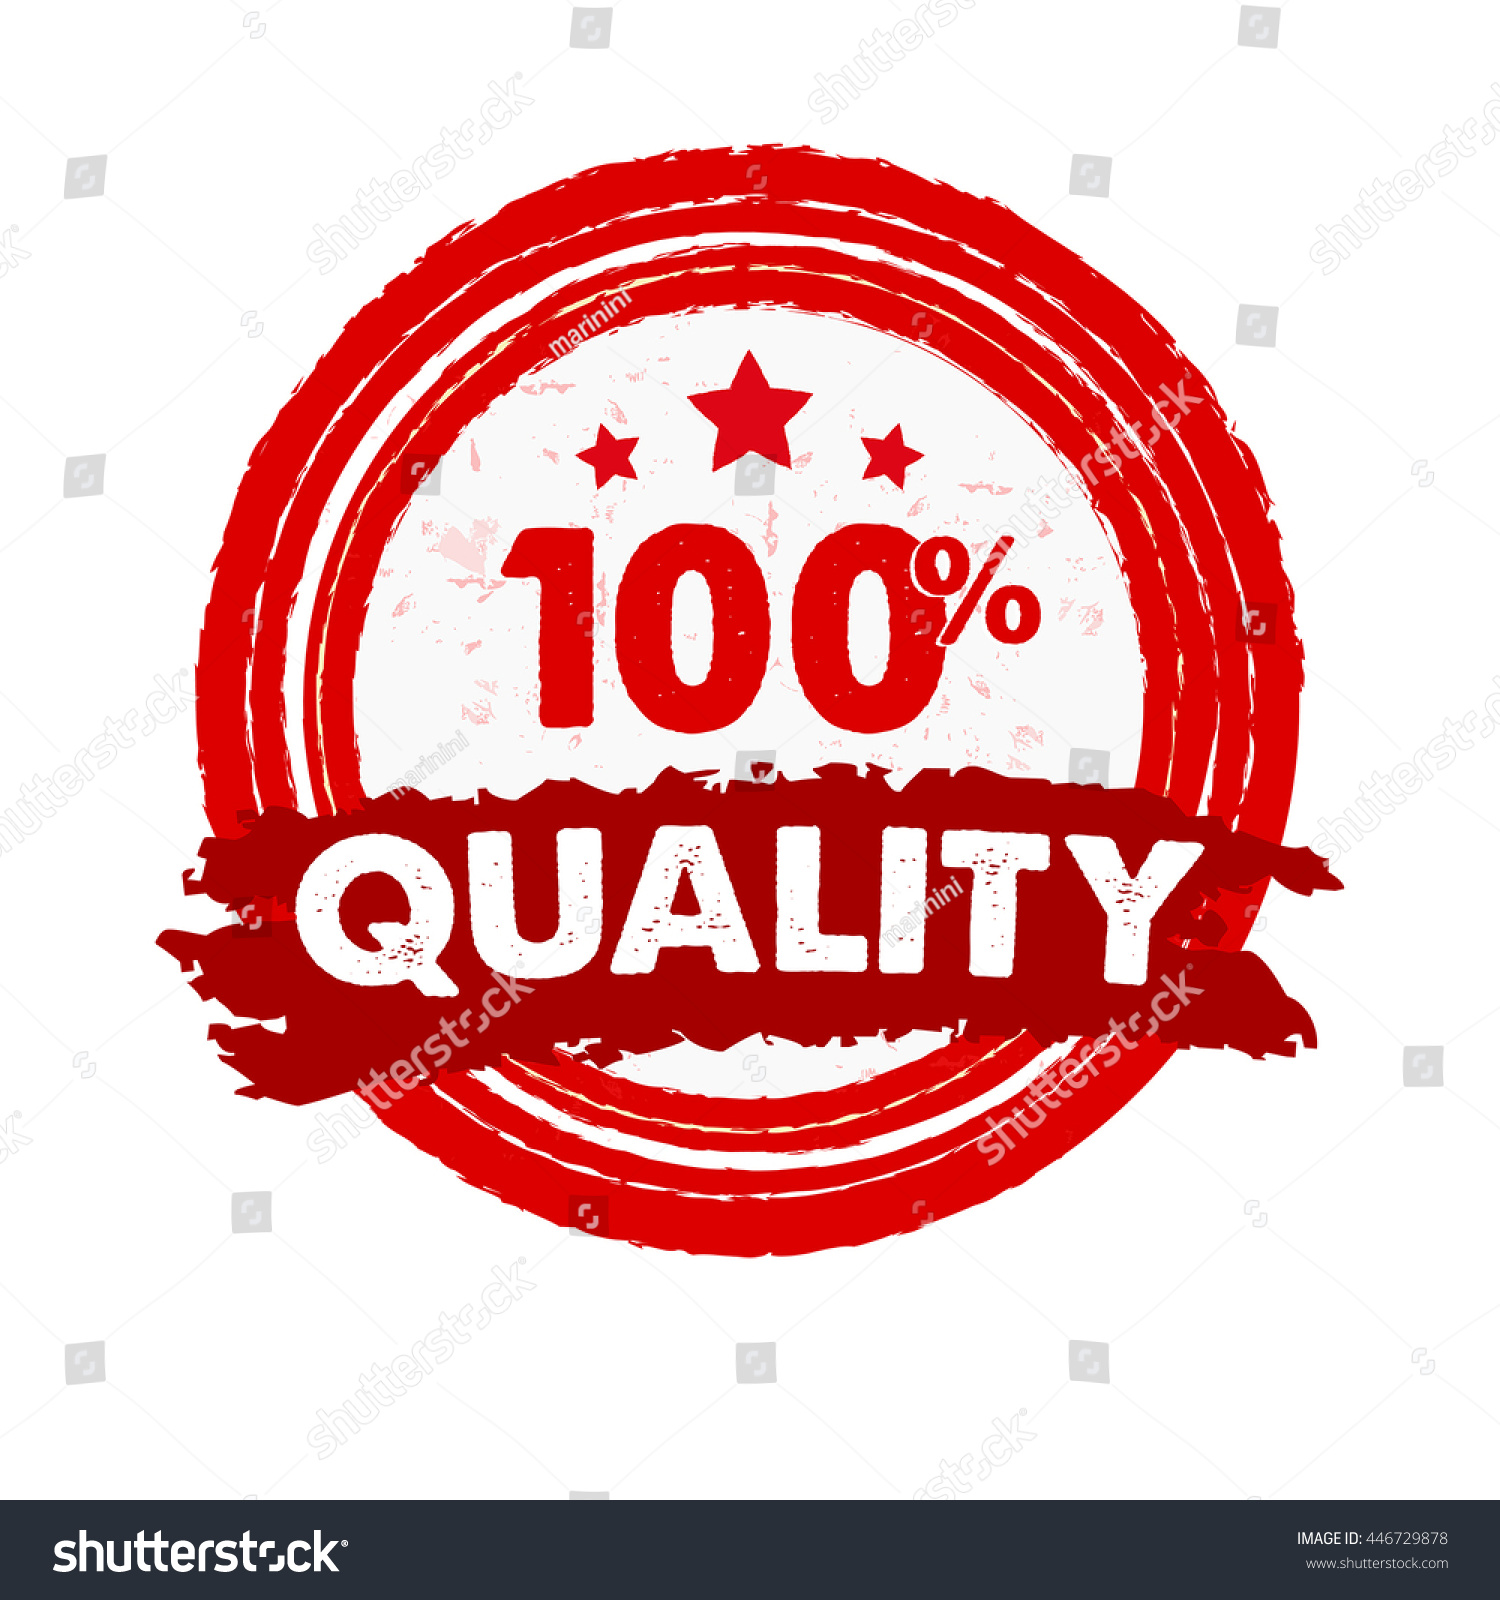 100 percentages quality stars text red stock vector 446729878 100 percentages quality and stars text in red grunge drawn round banner with symbol buycottarizona Image collections